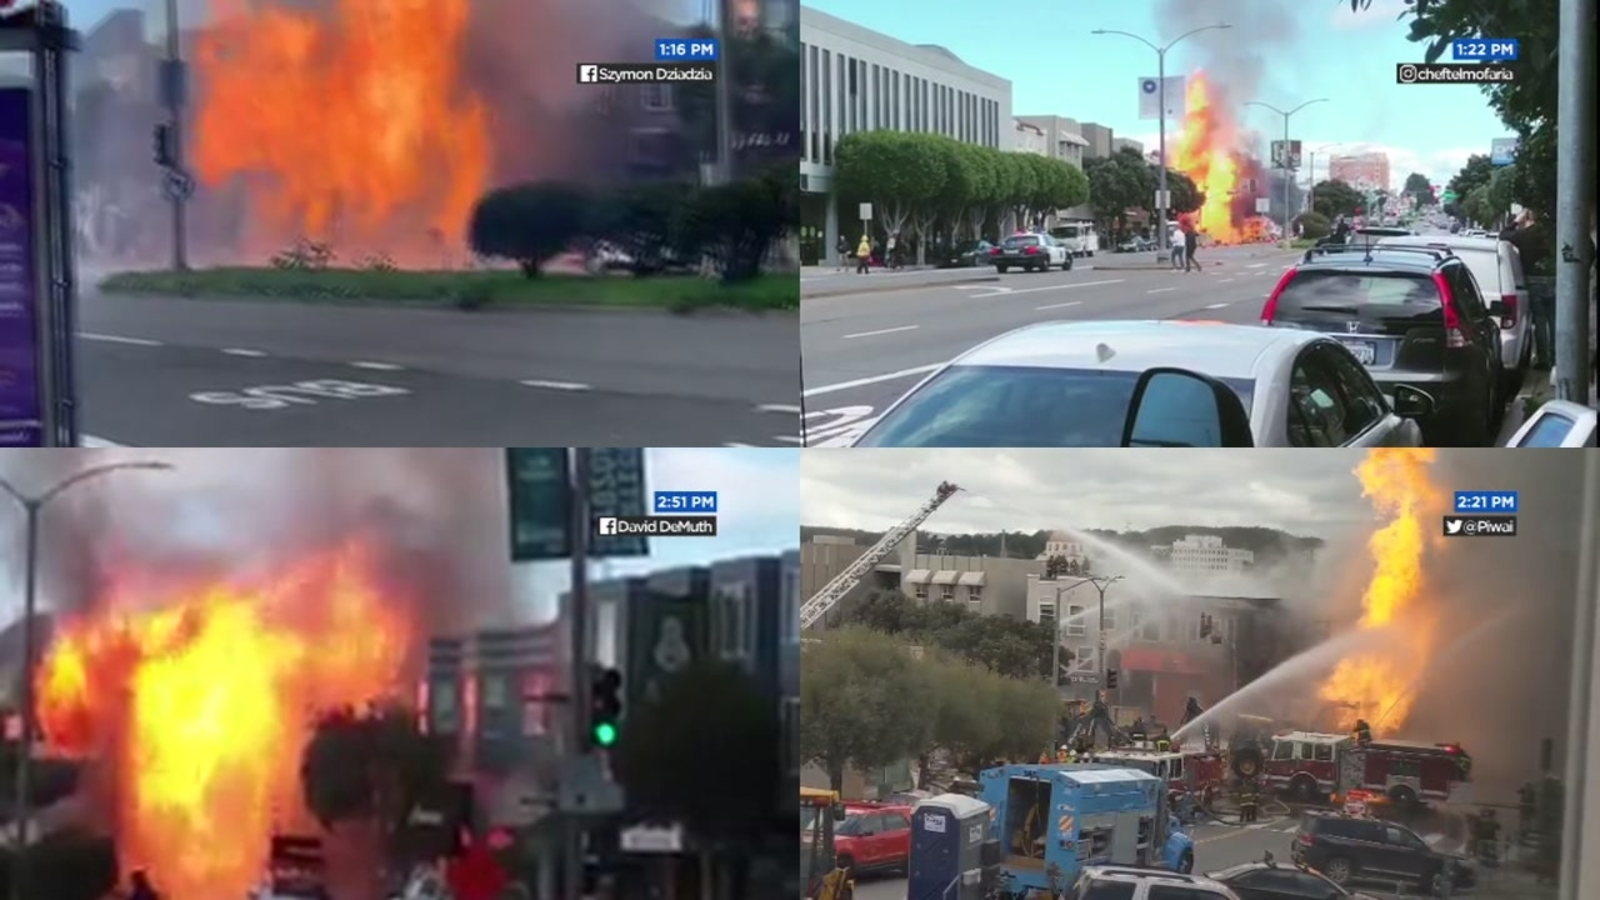 TIMELINE: Gas explosion, fire in San Francisco